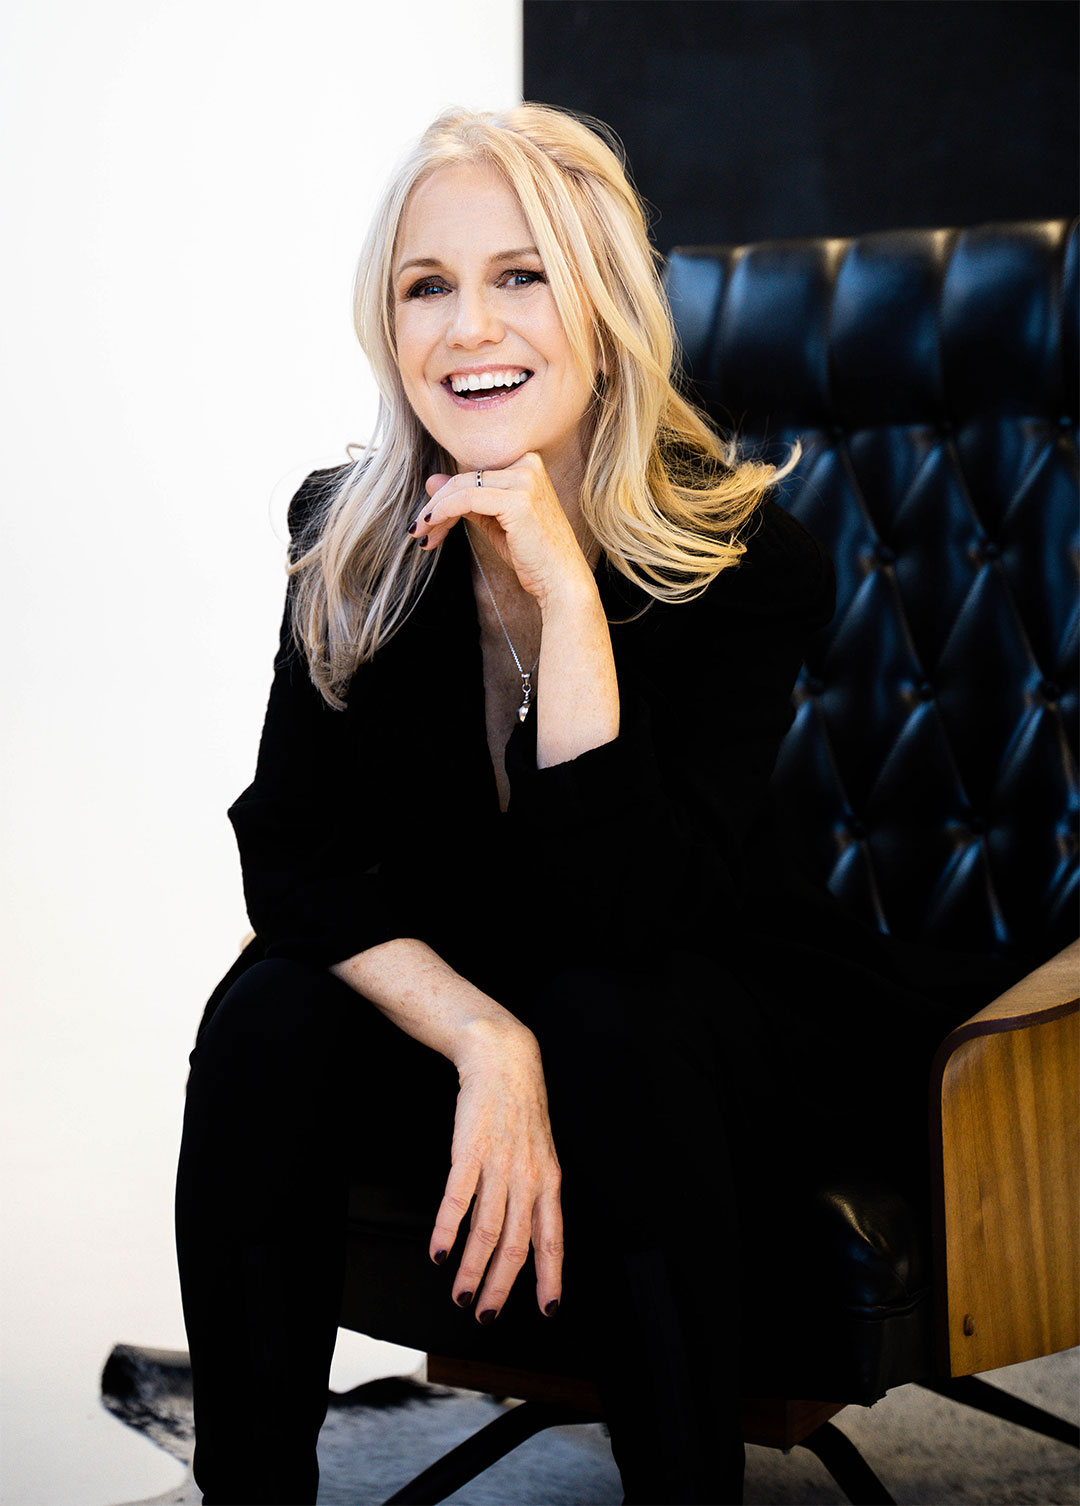 Nina Rolle smiling and wearing a black suit while sitting in a black leather armchair